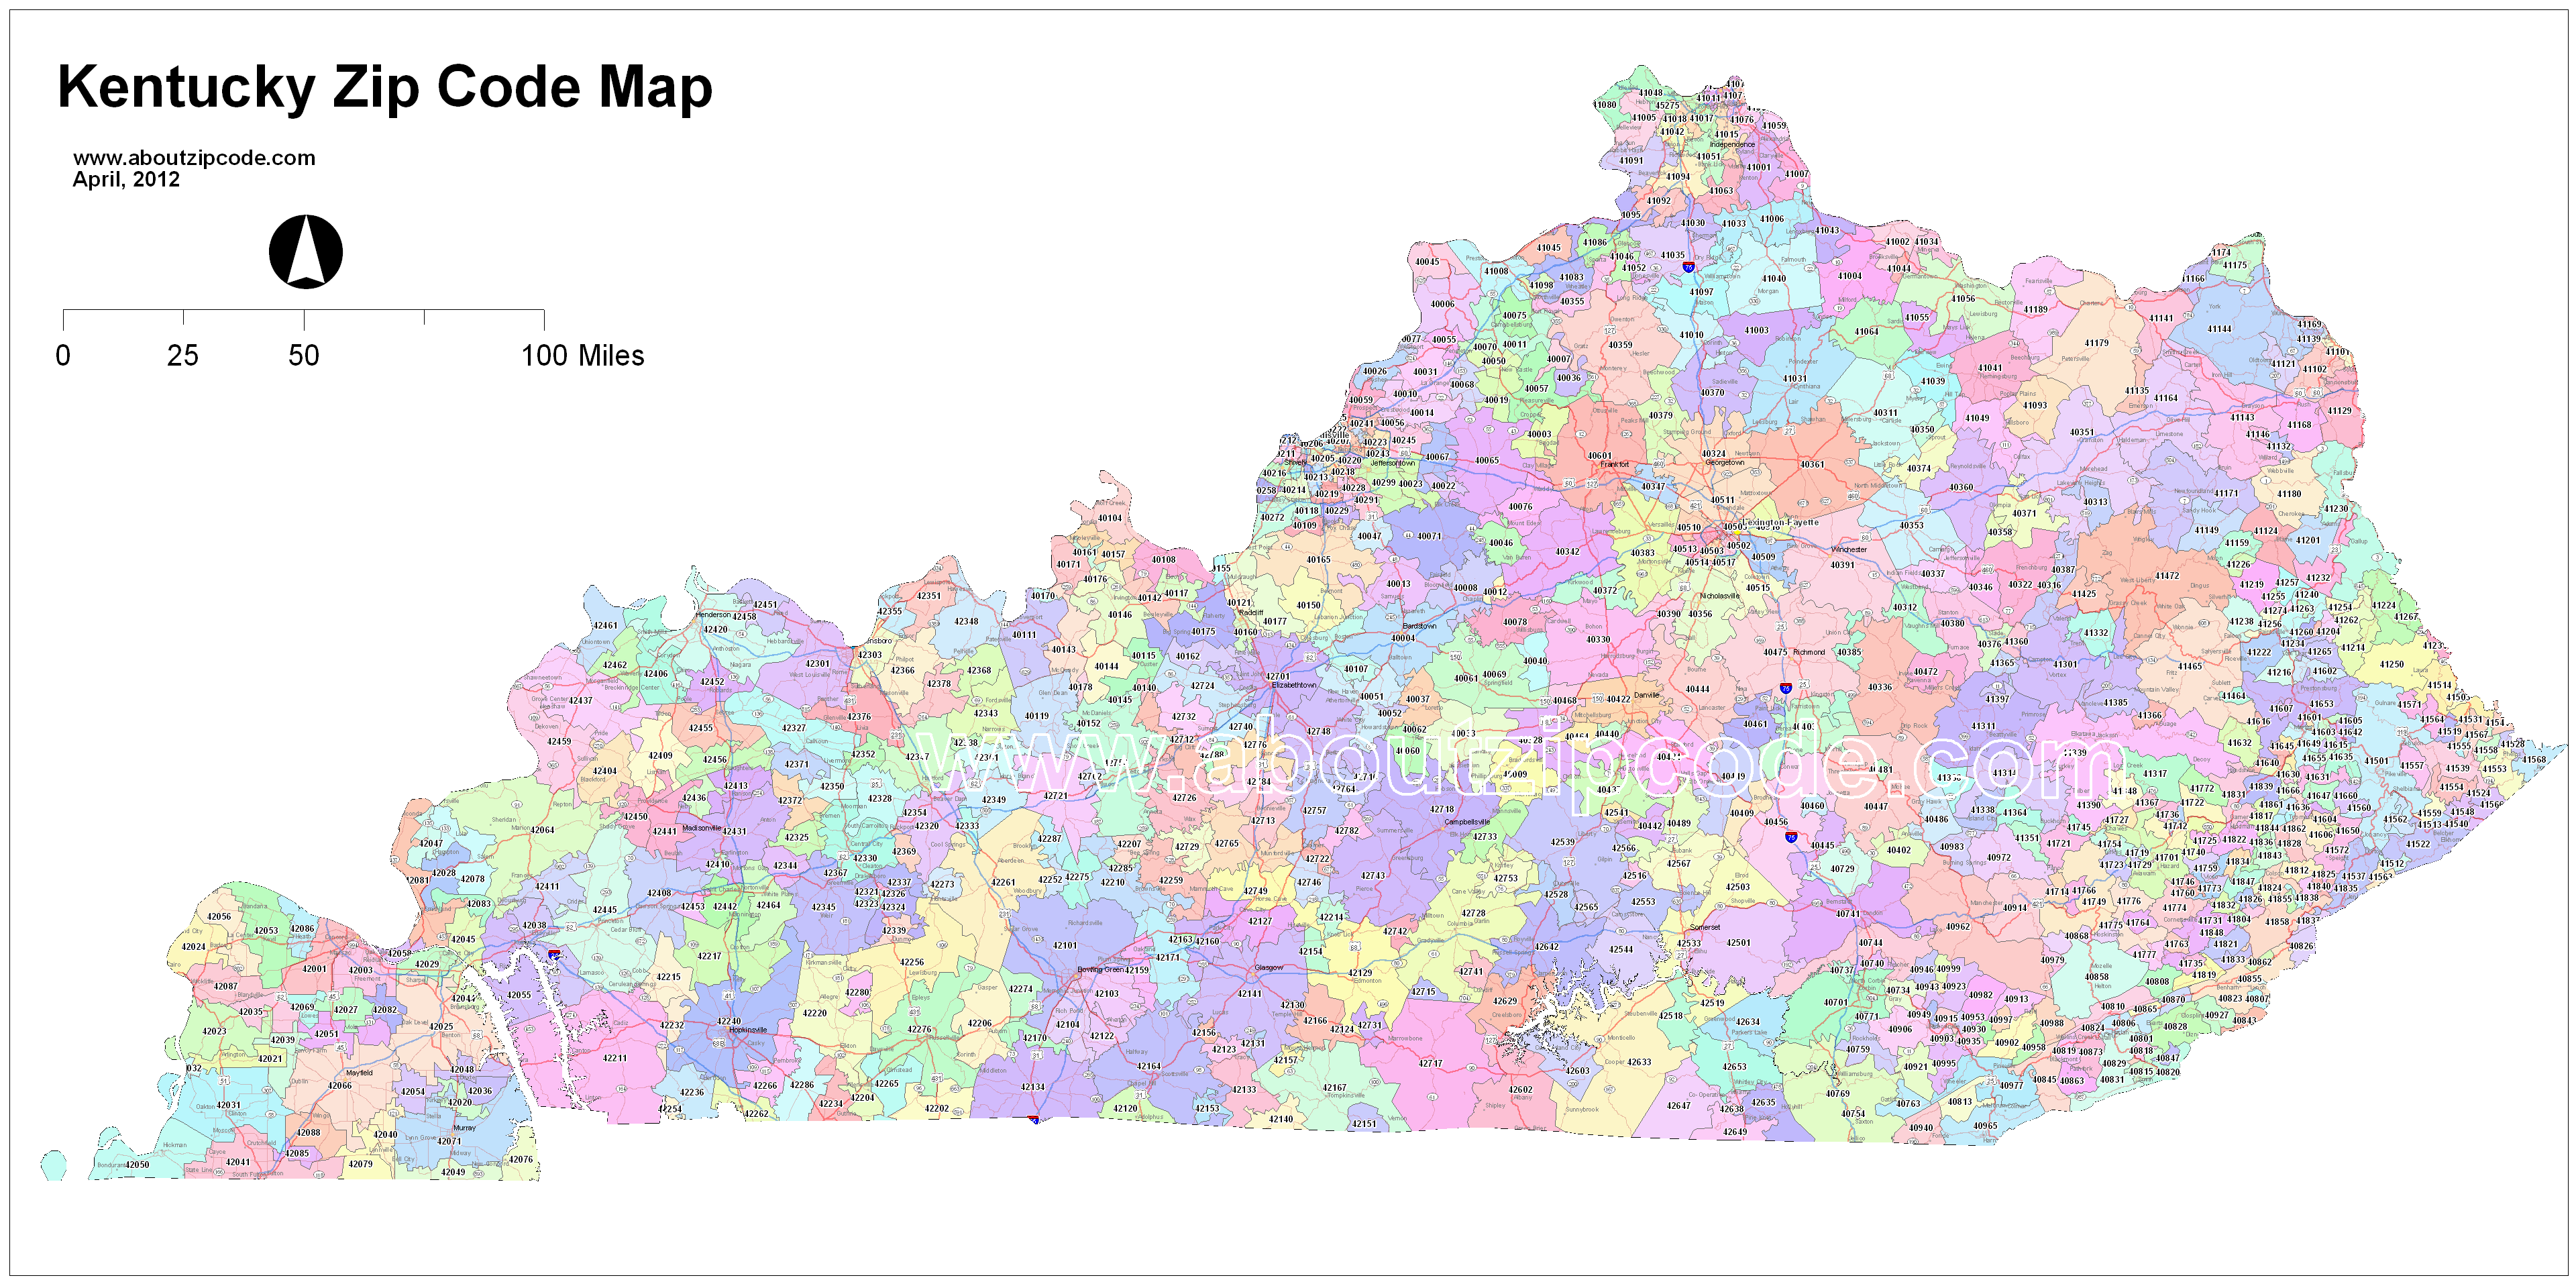 Kentucky Zip Code Maps Free Kentucky Zip Code Maps - Map kentucky